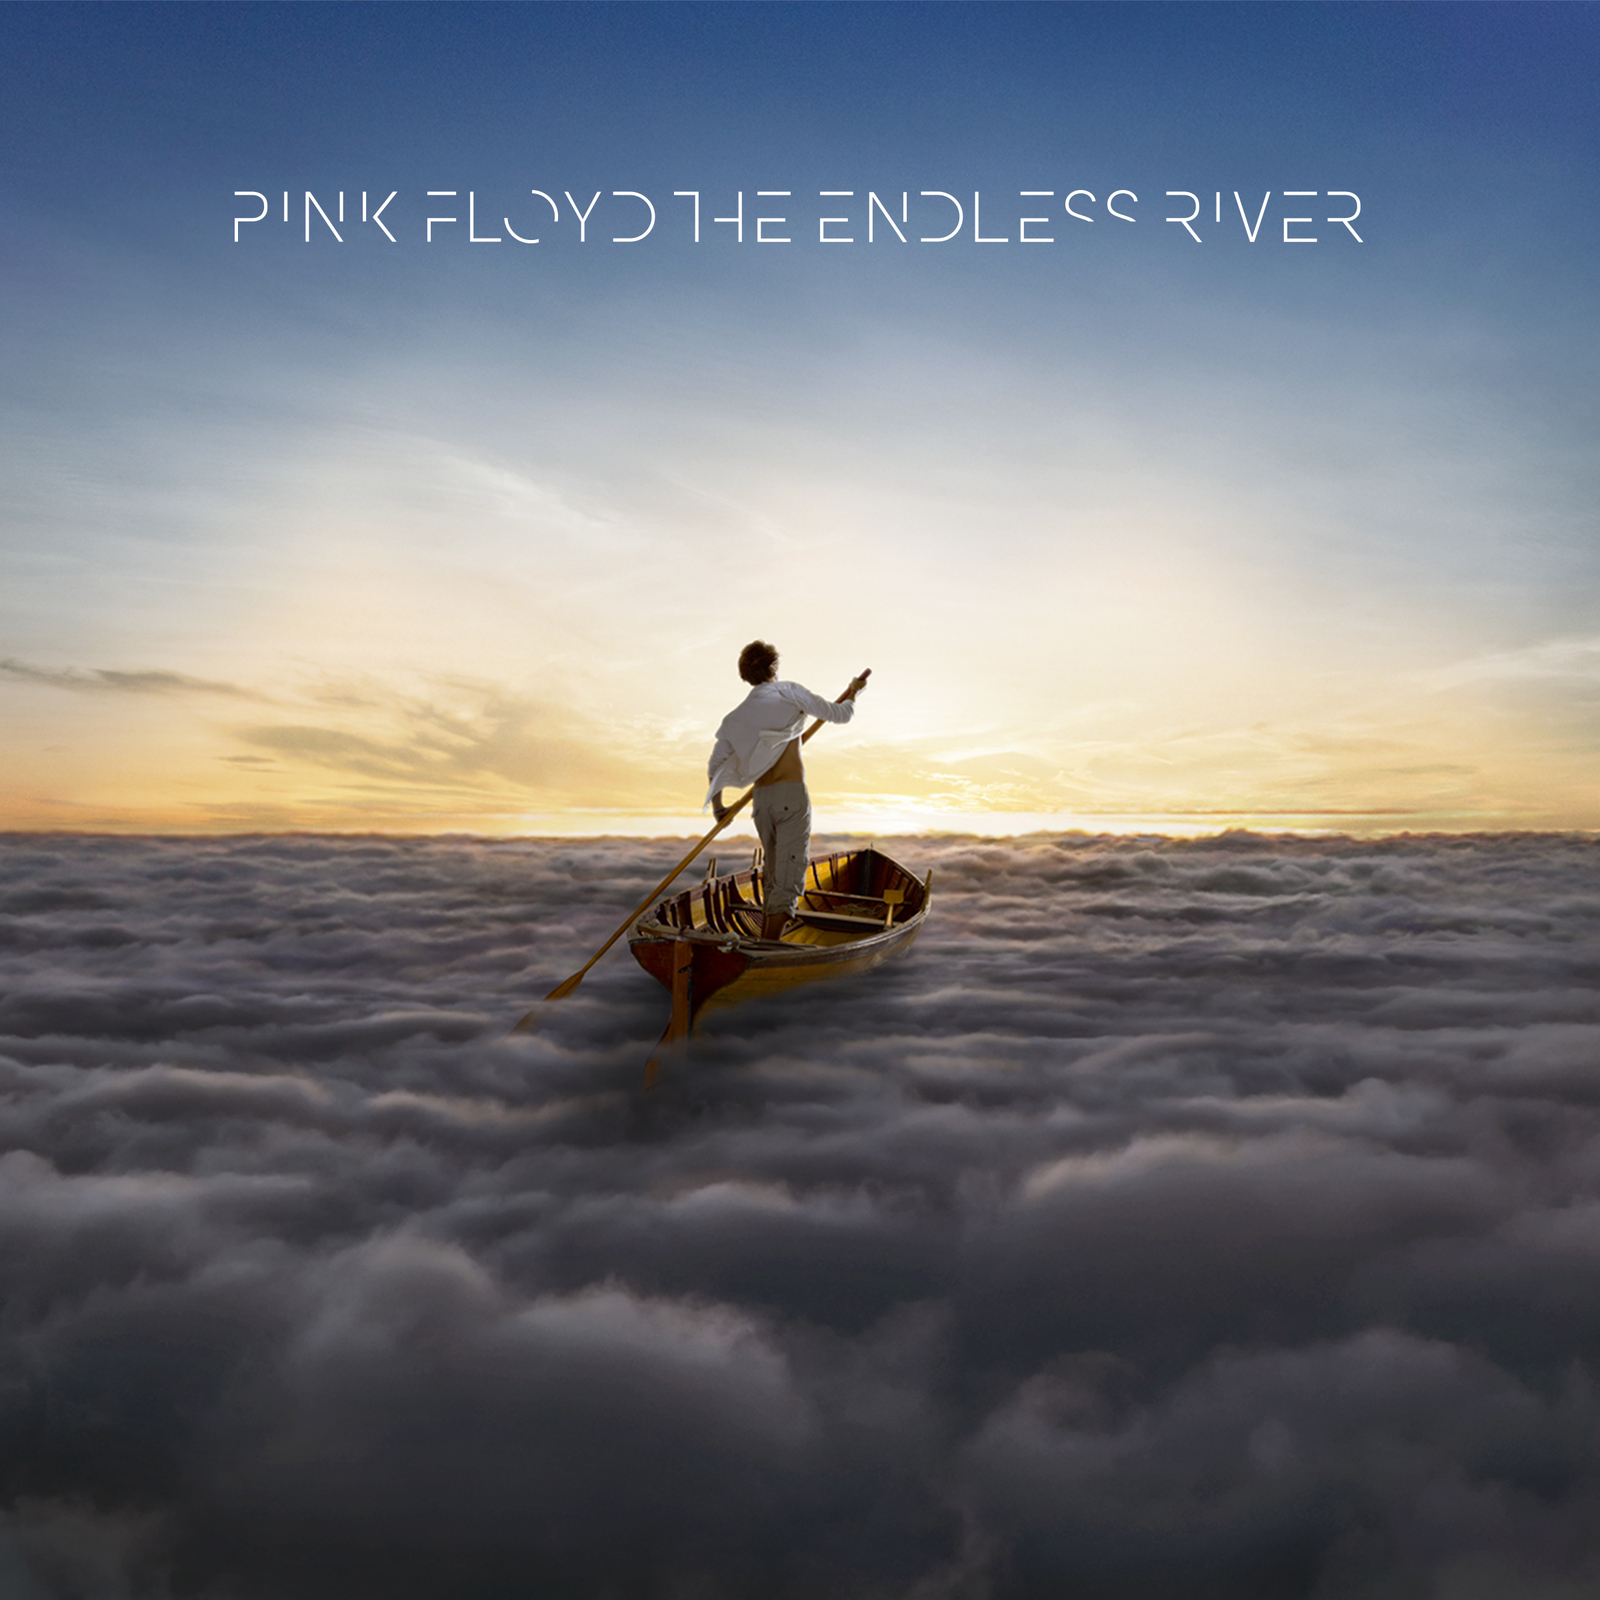 The Endless River by Pink Floyd image